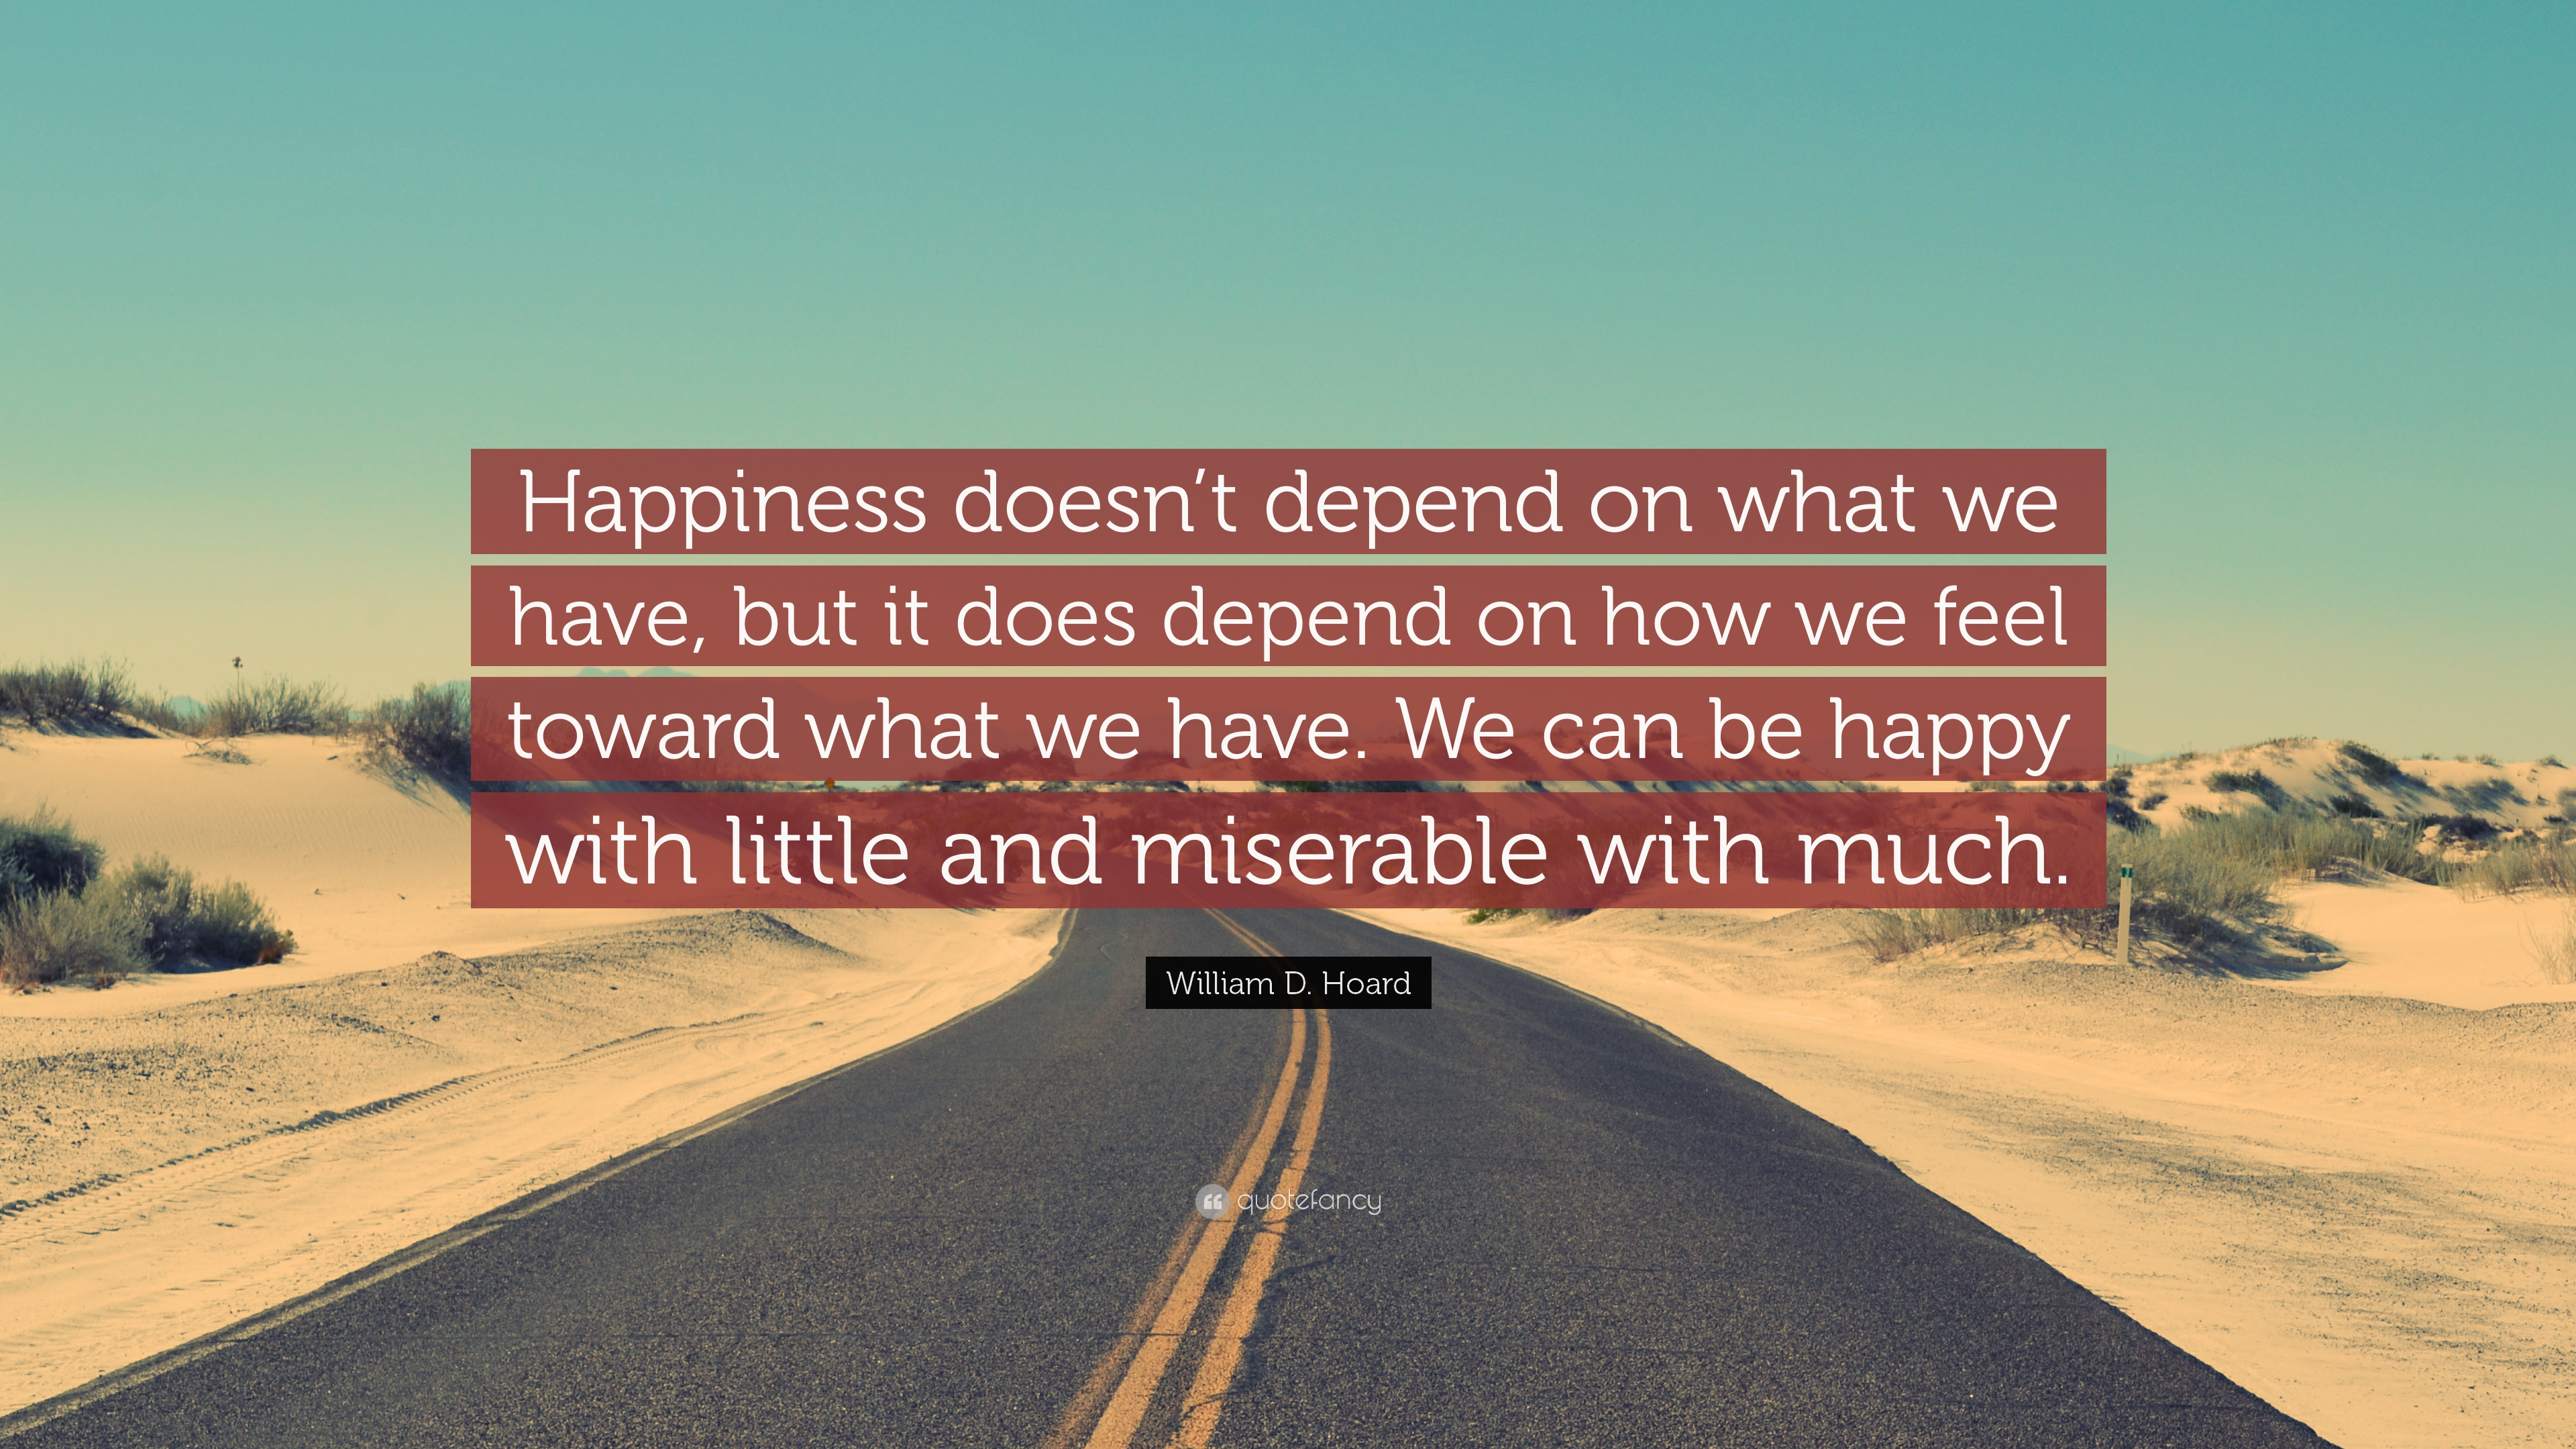 William D Hoard Quote: €�happiness Doesn't Depend On What We Have